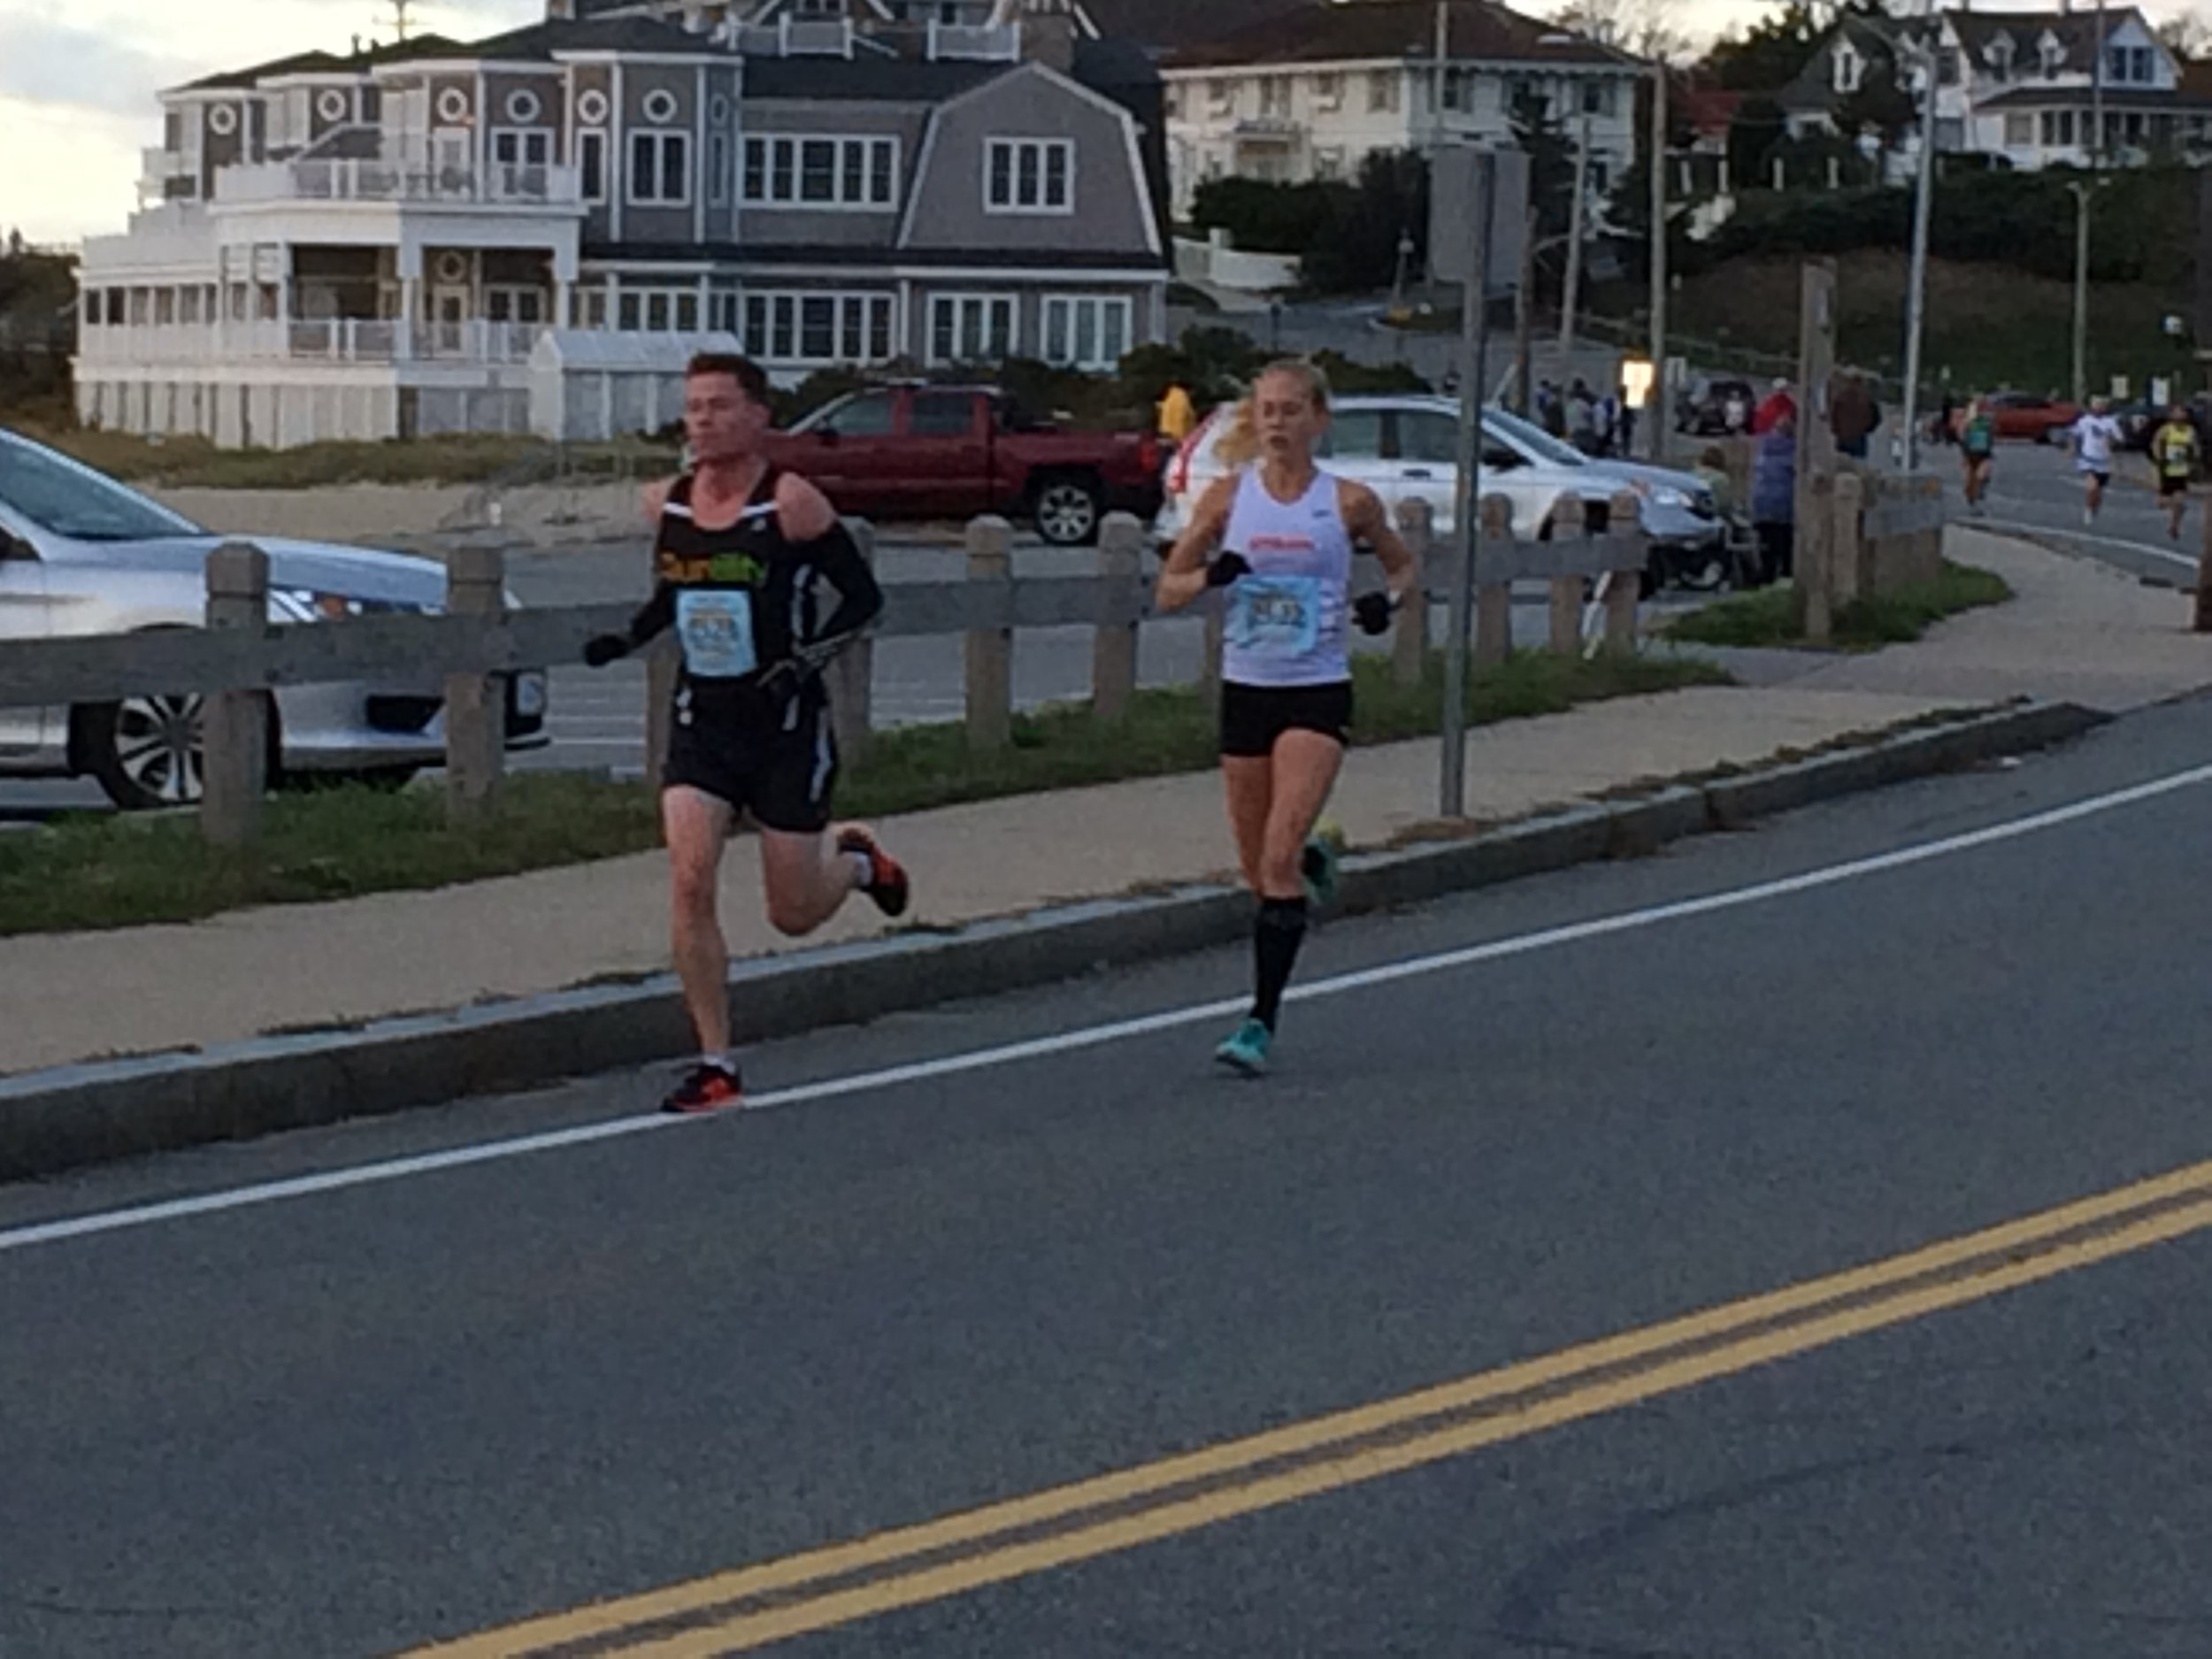 Approaching mile 3